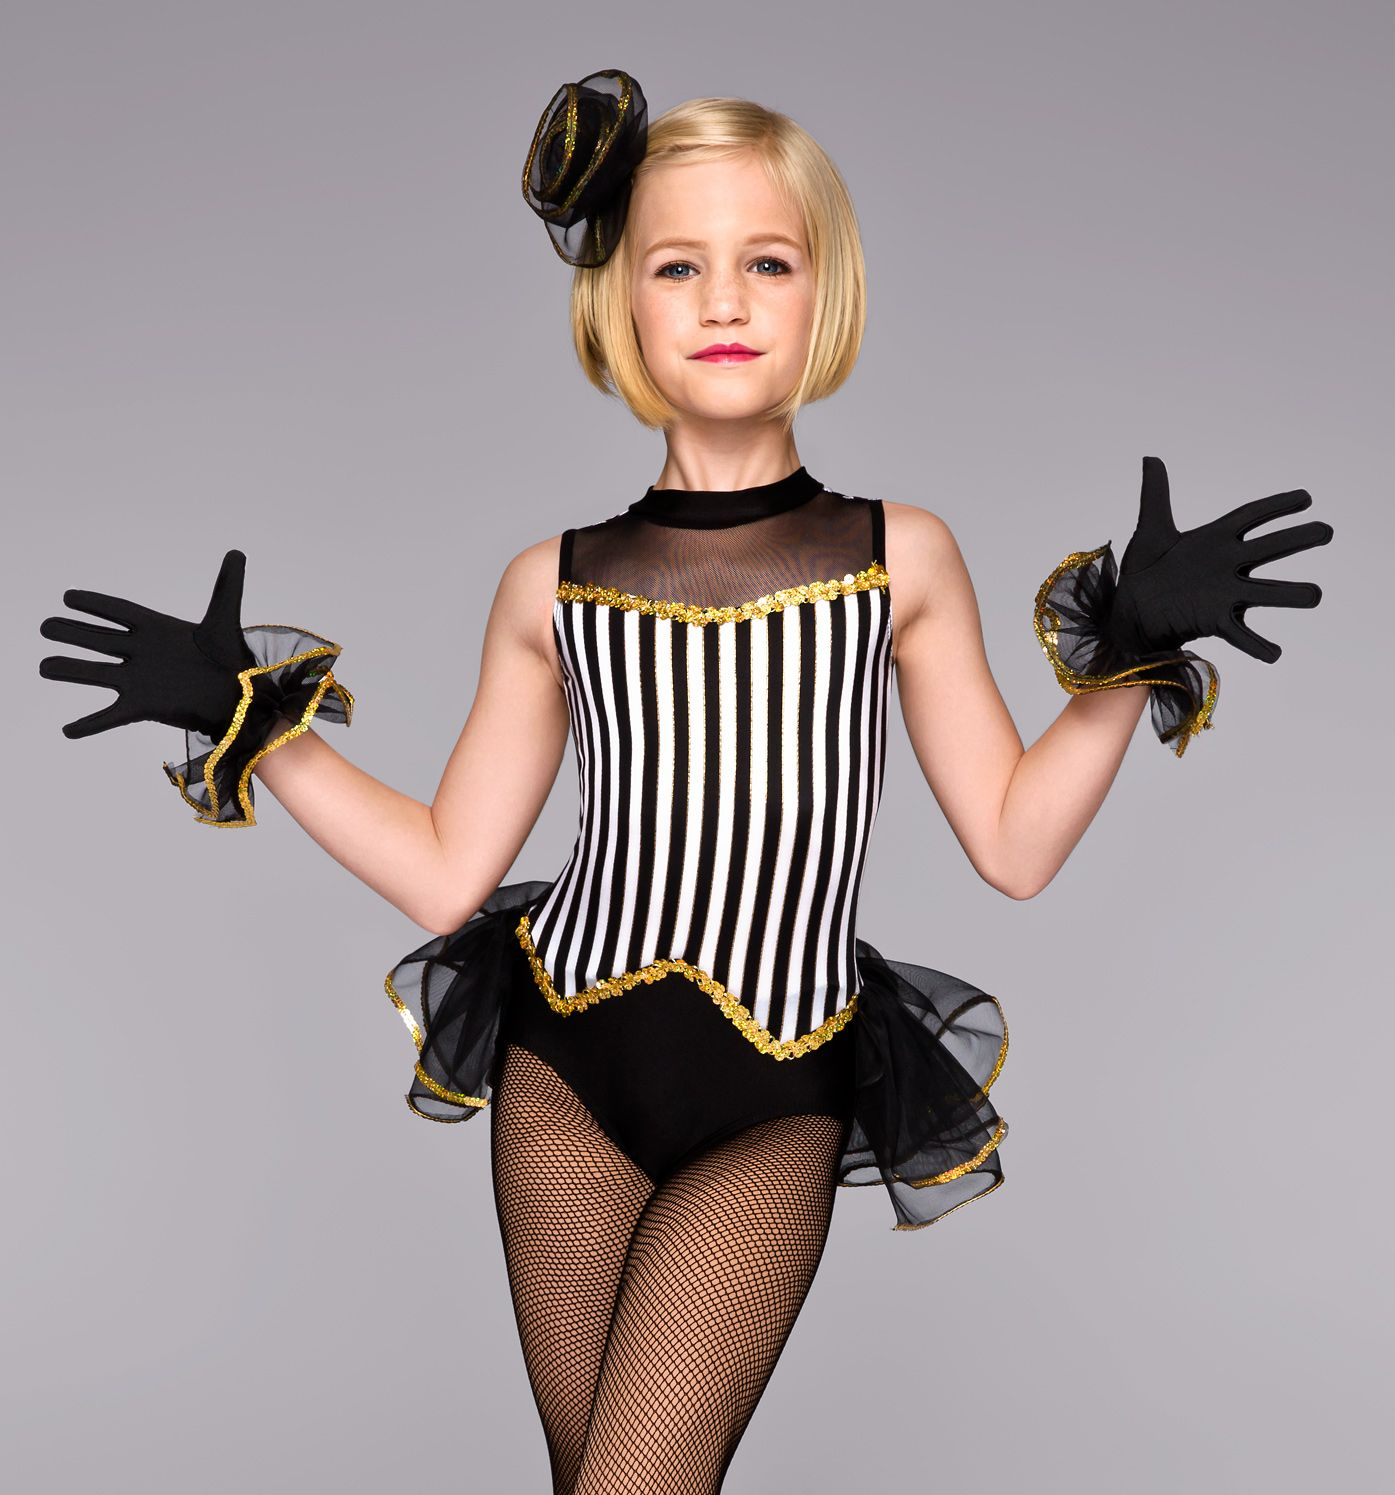 dance classes for 3 year olds portsmouth